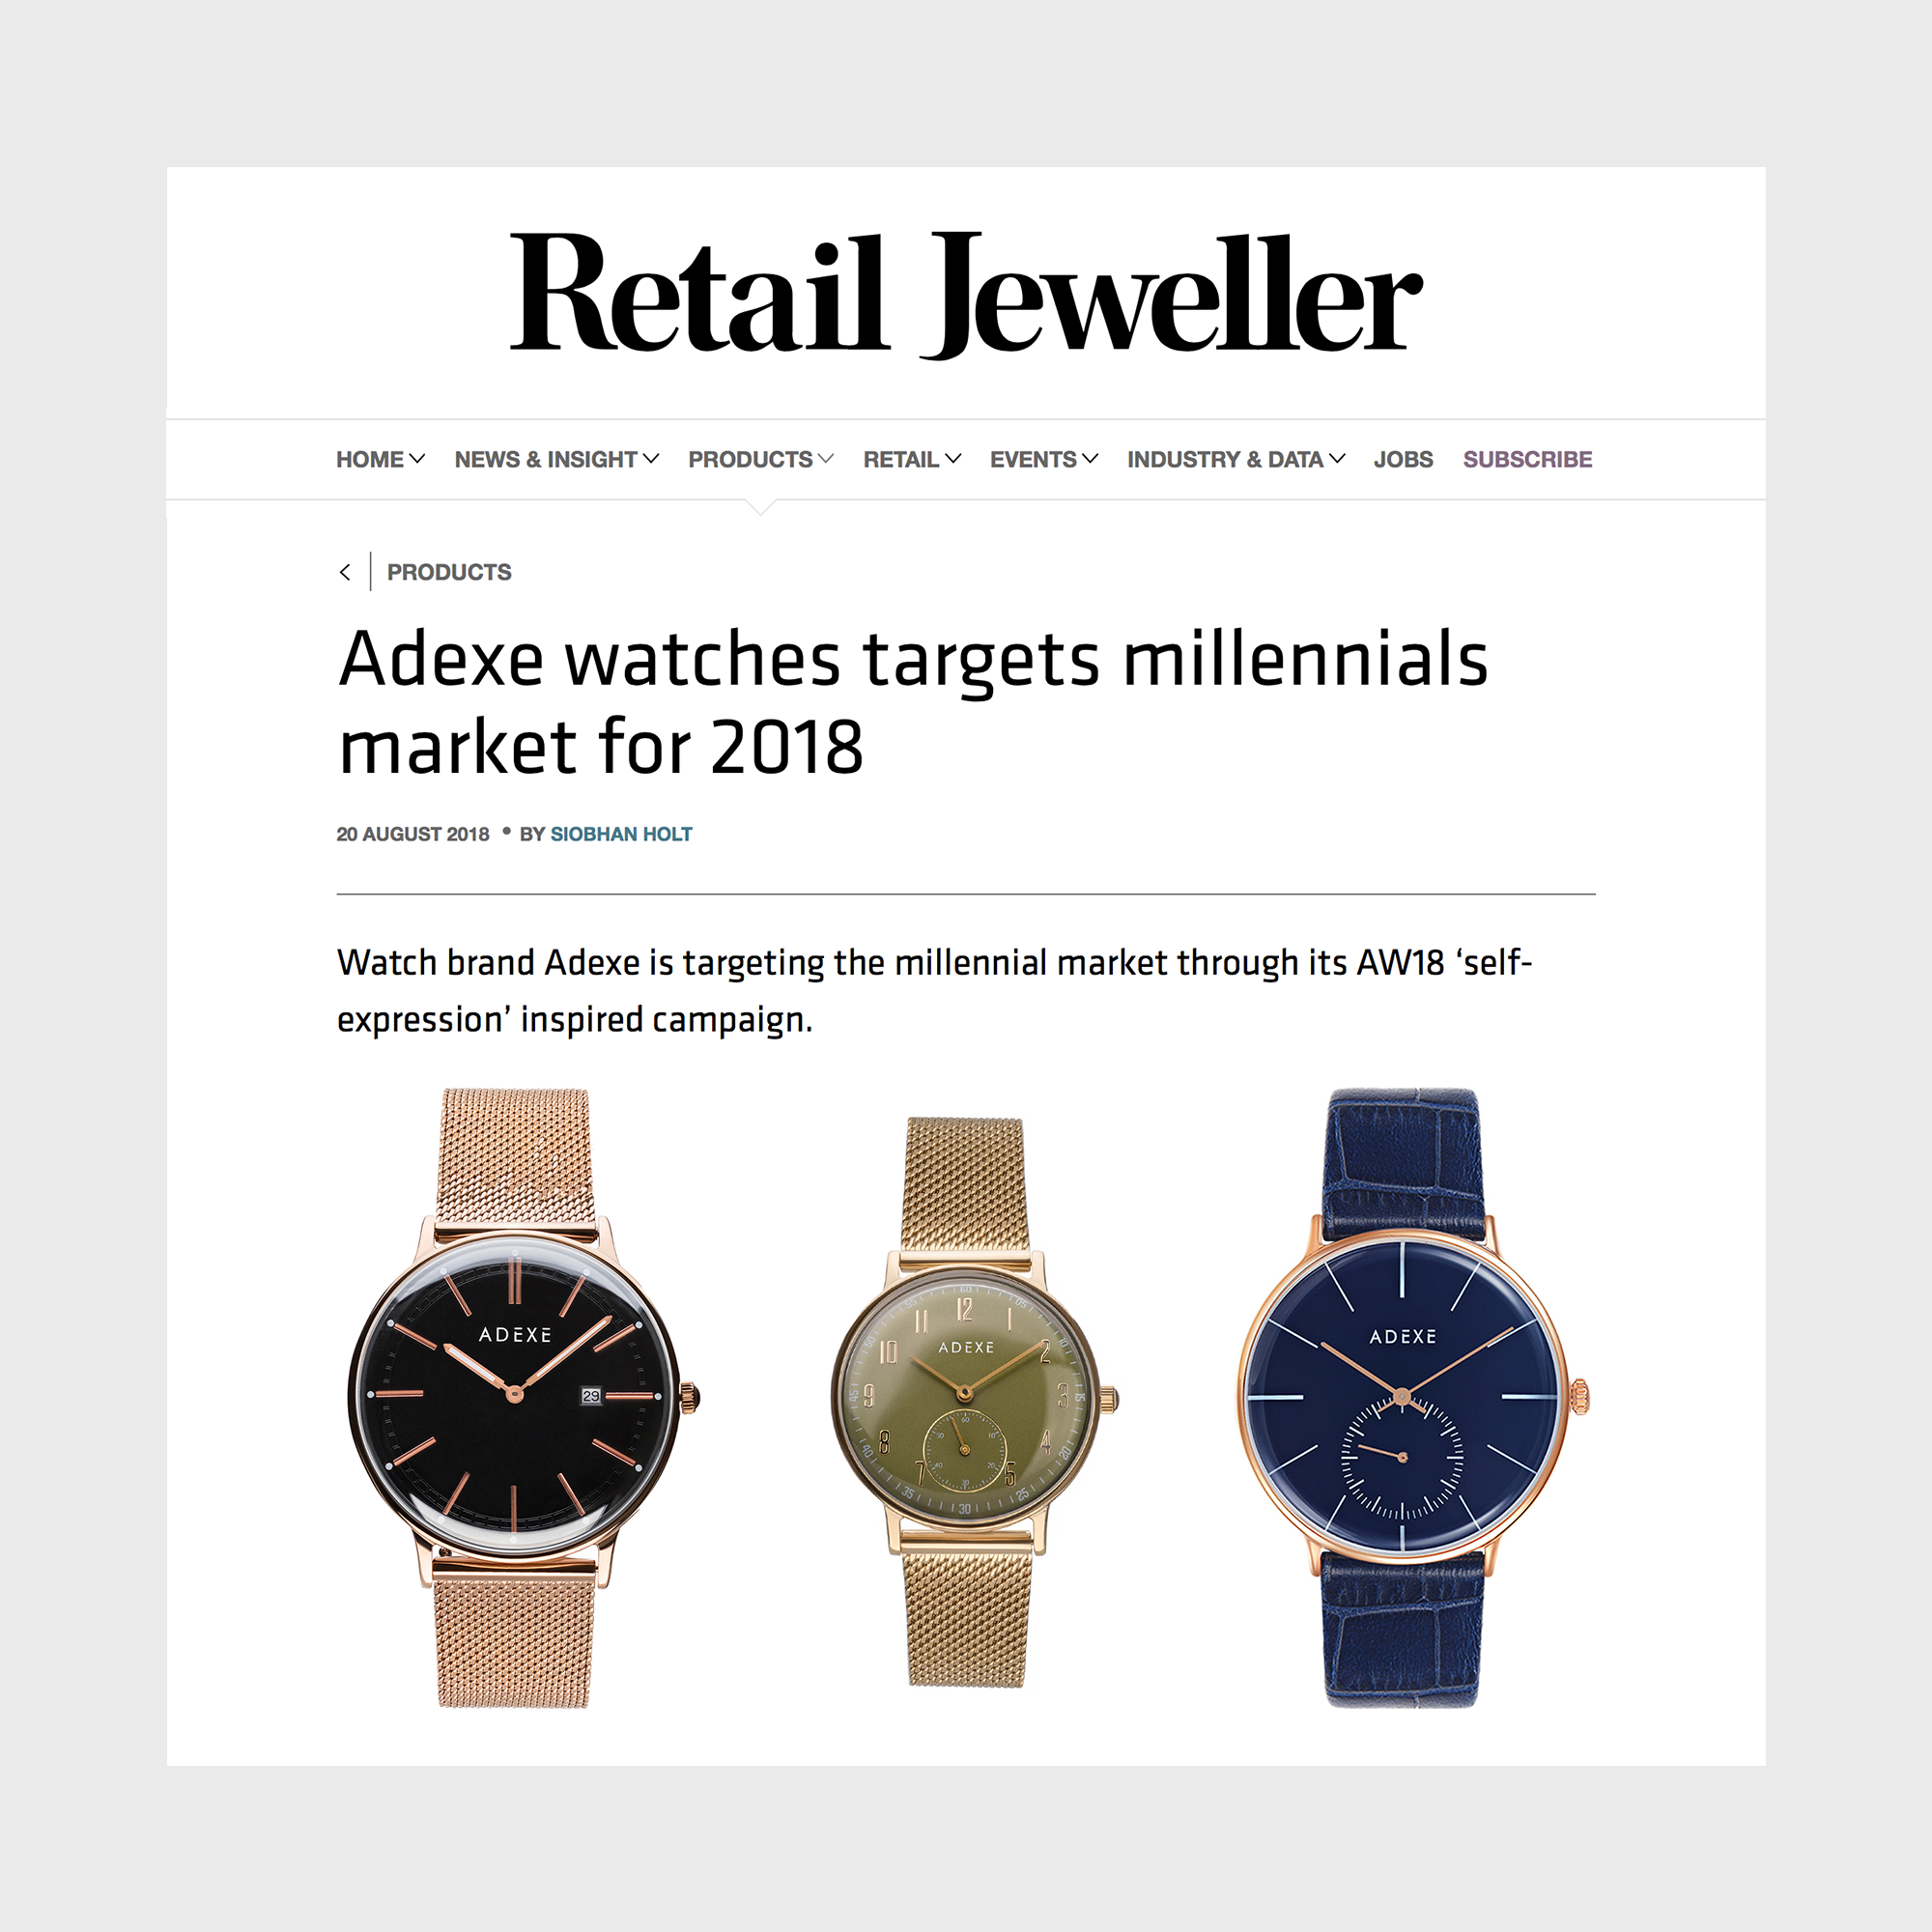 Retail Jeweller Featuring ADEXE